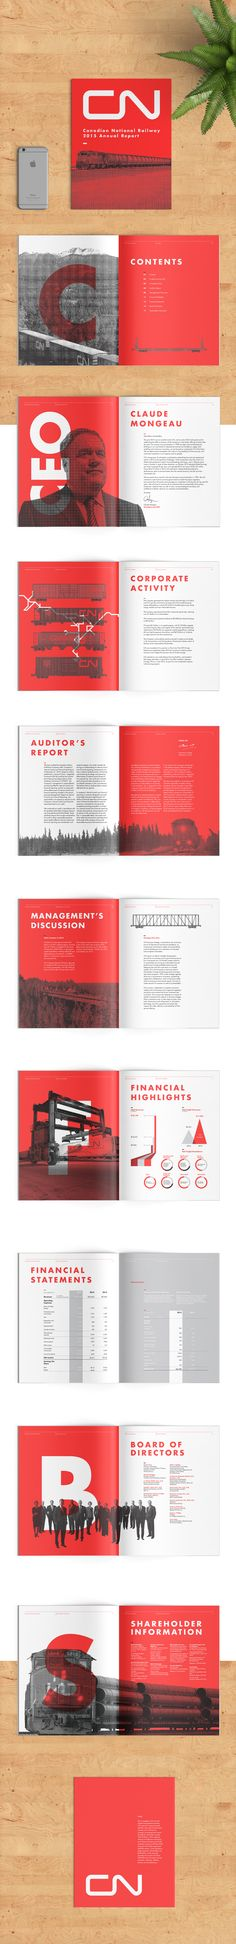 Annual report project for my Corporate class.